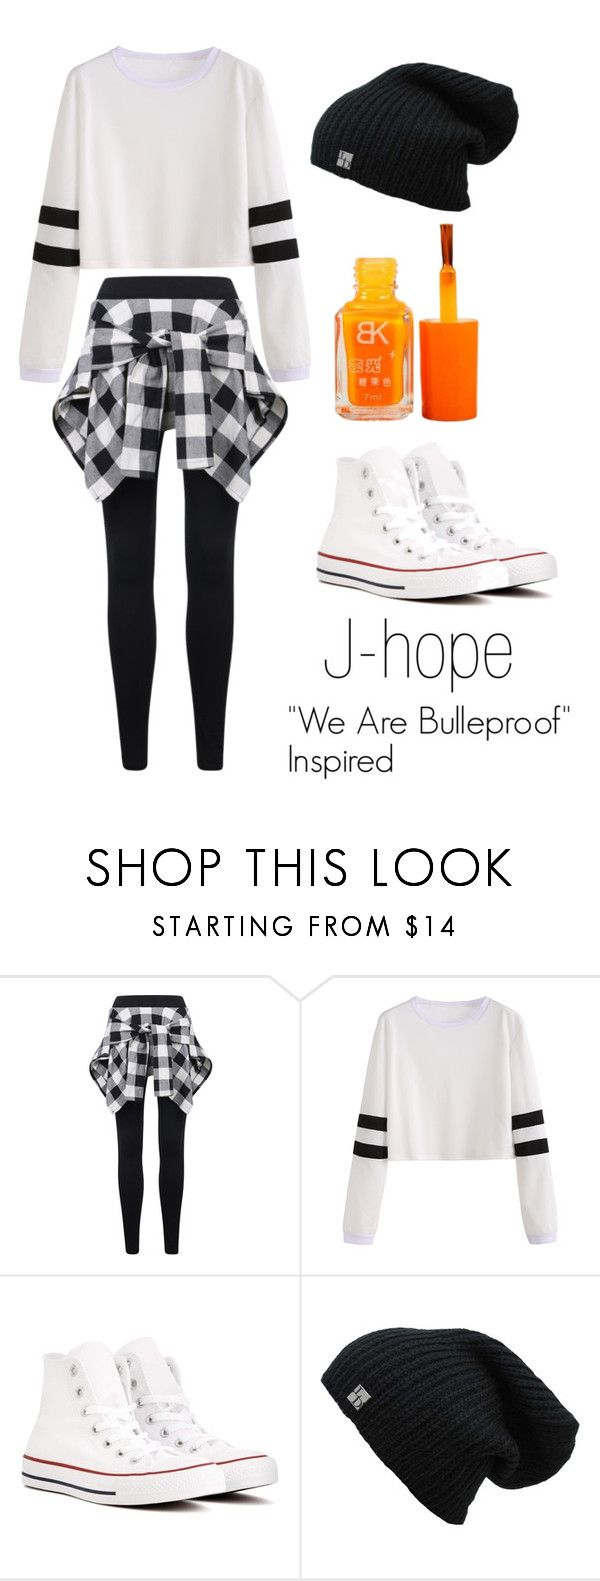 """""""J-hope """"We Are Bulletproof"""" Inspired Outfit"""" by mochimchimus on Polyvore featuring Converse and bts"""